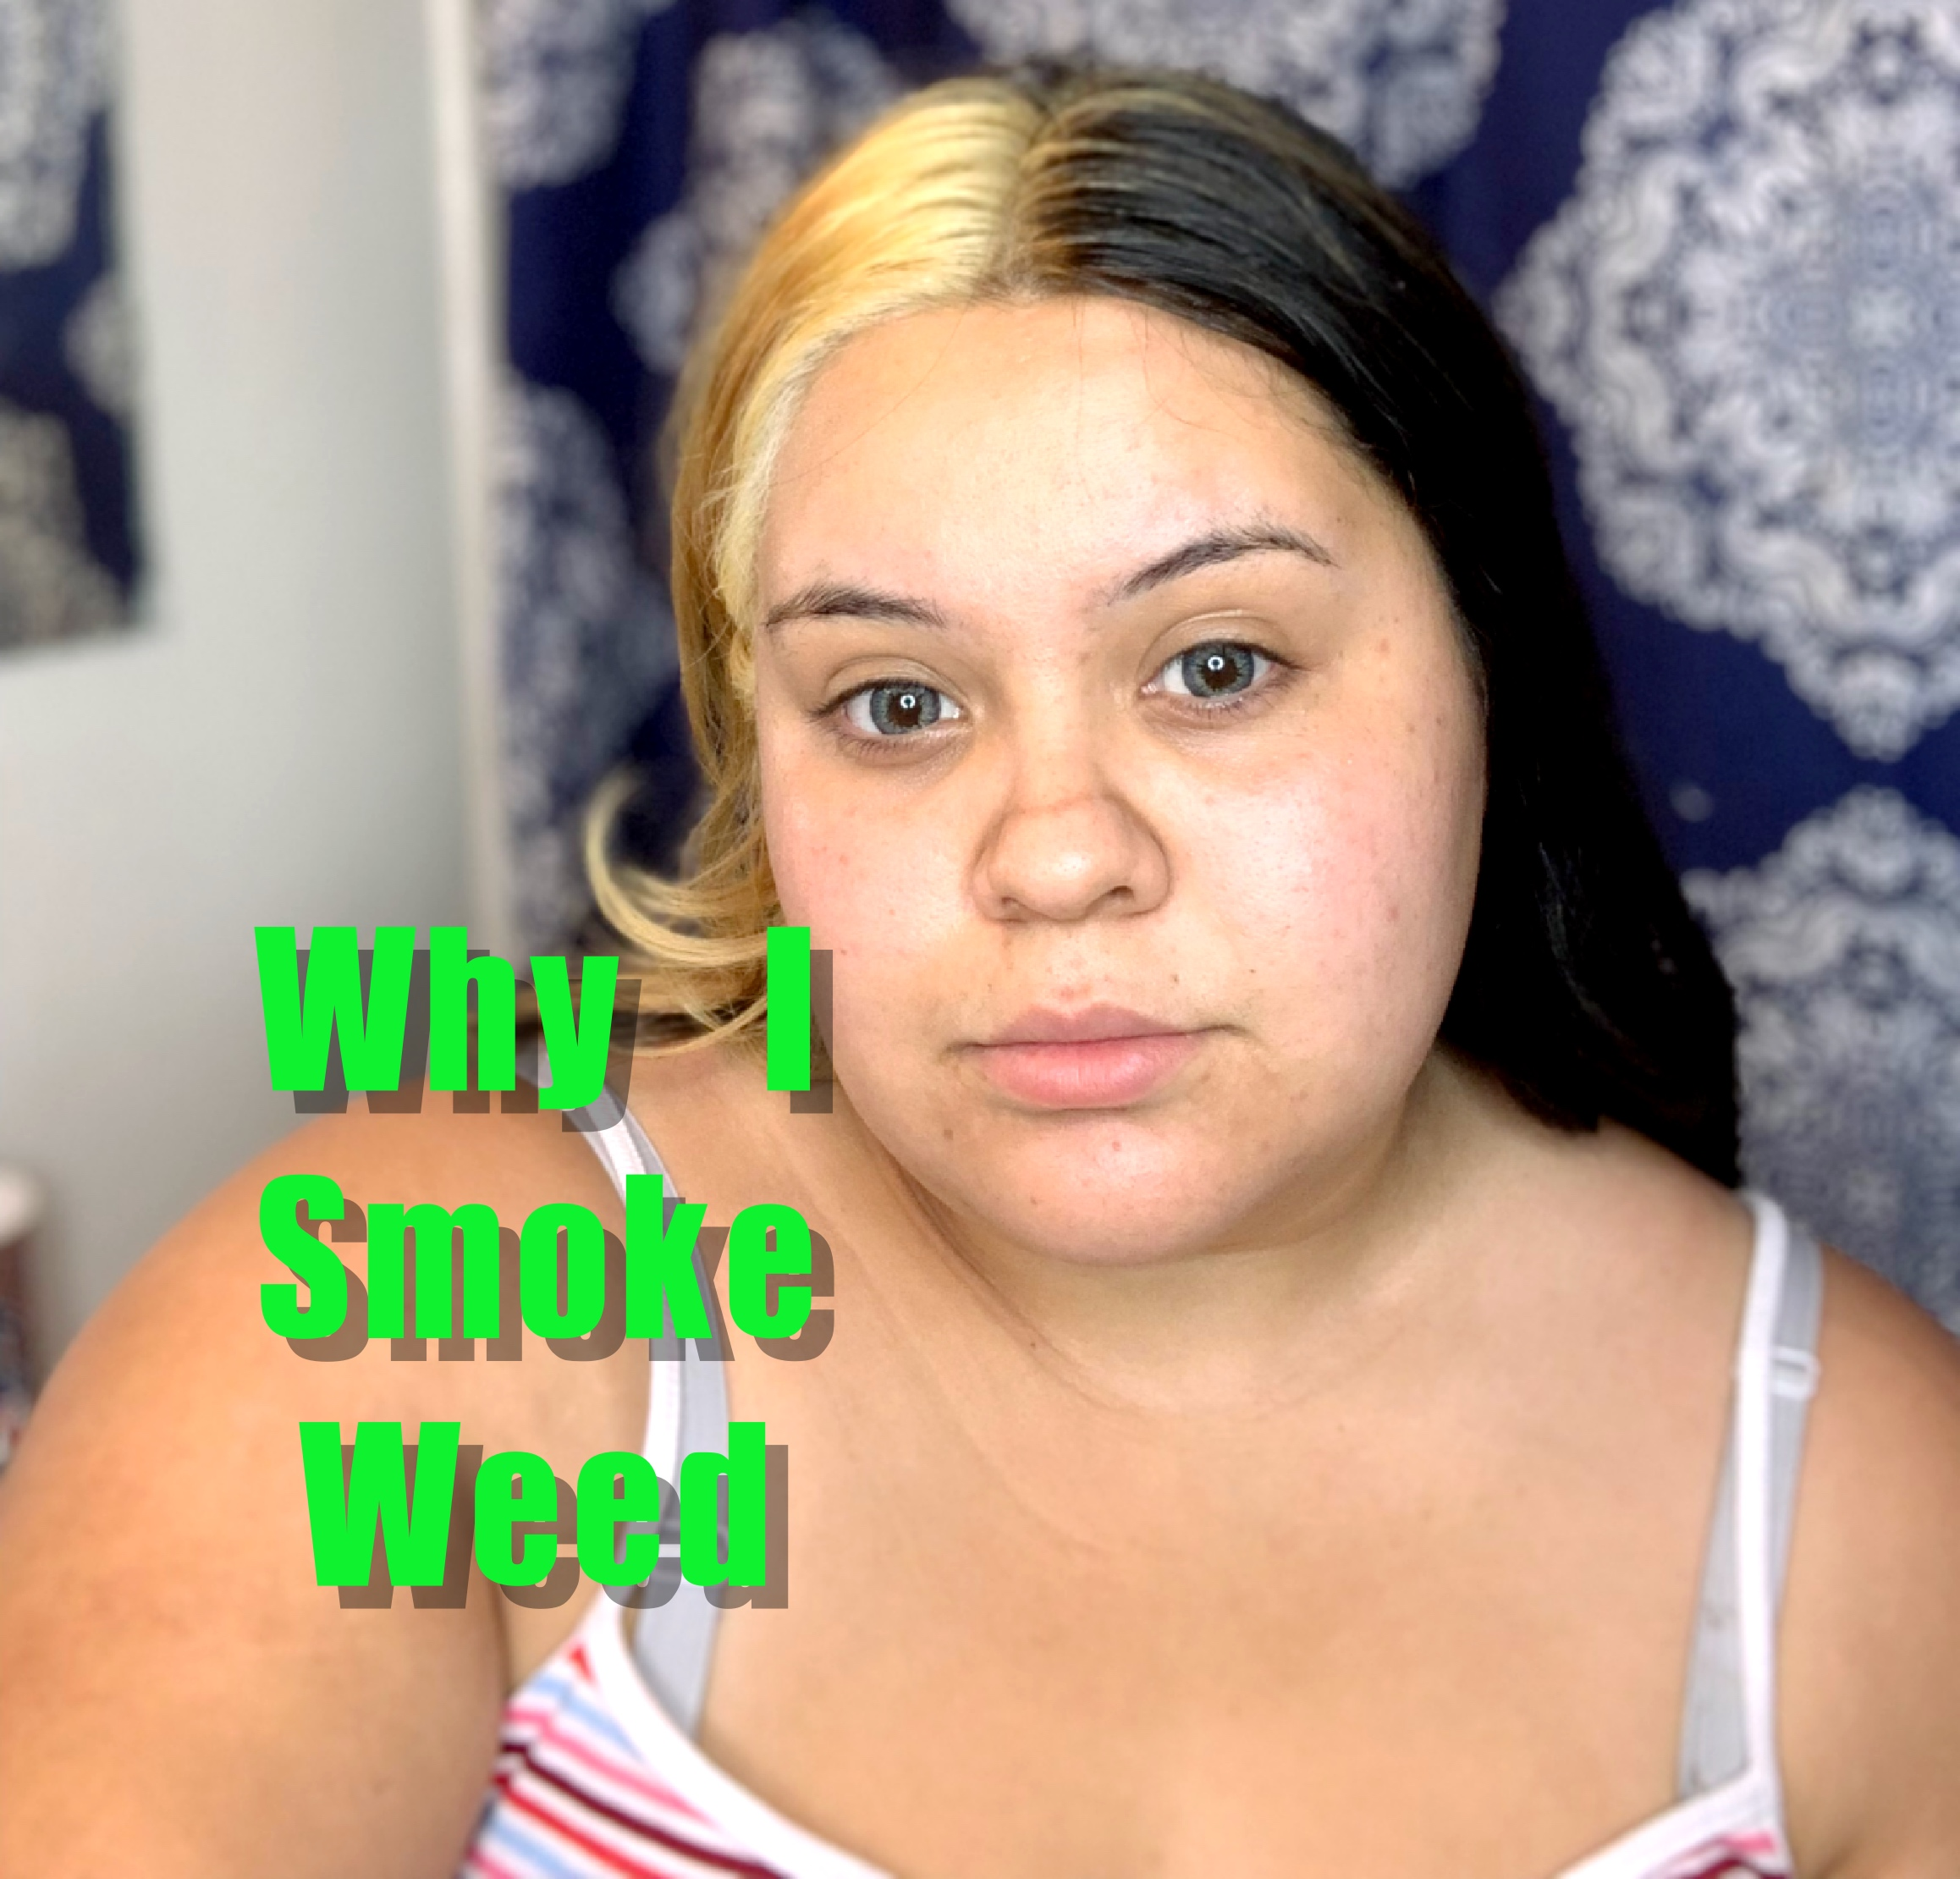 when i started smoking and why I feel it helps